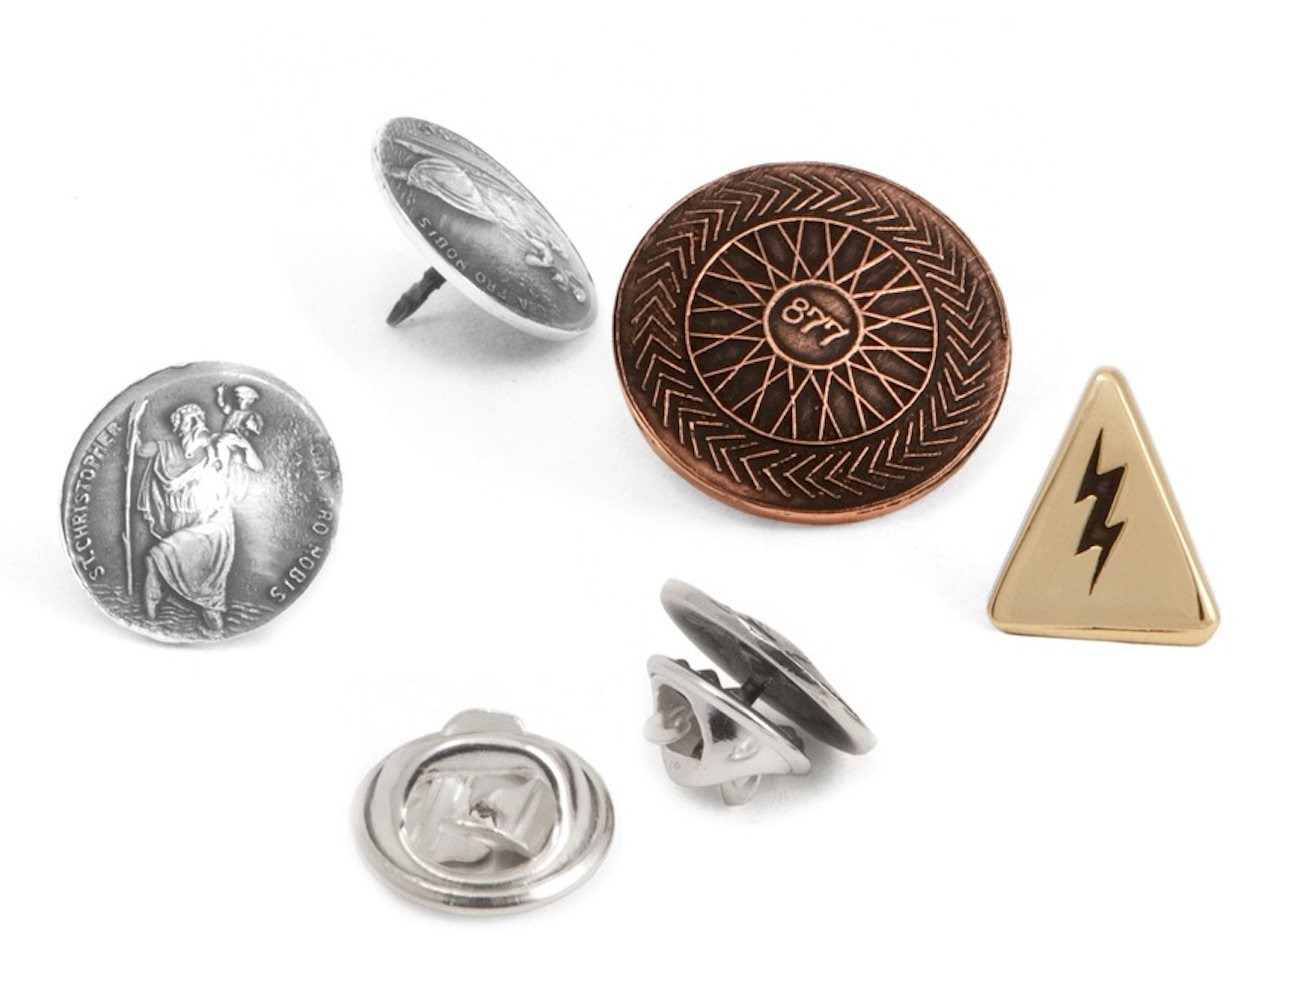 Autobahn Pin Set by 877 – Handmade Pins for the Automotive Enthusiast